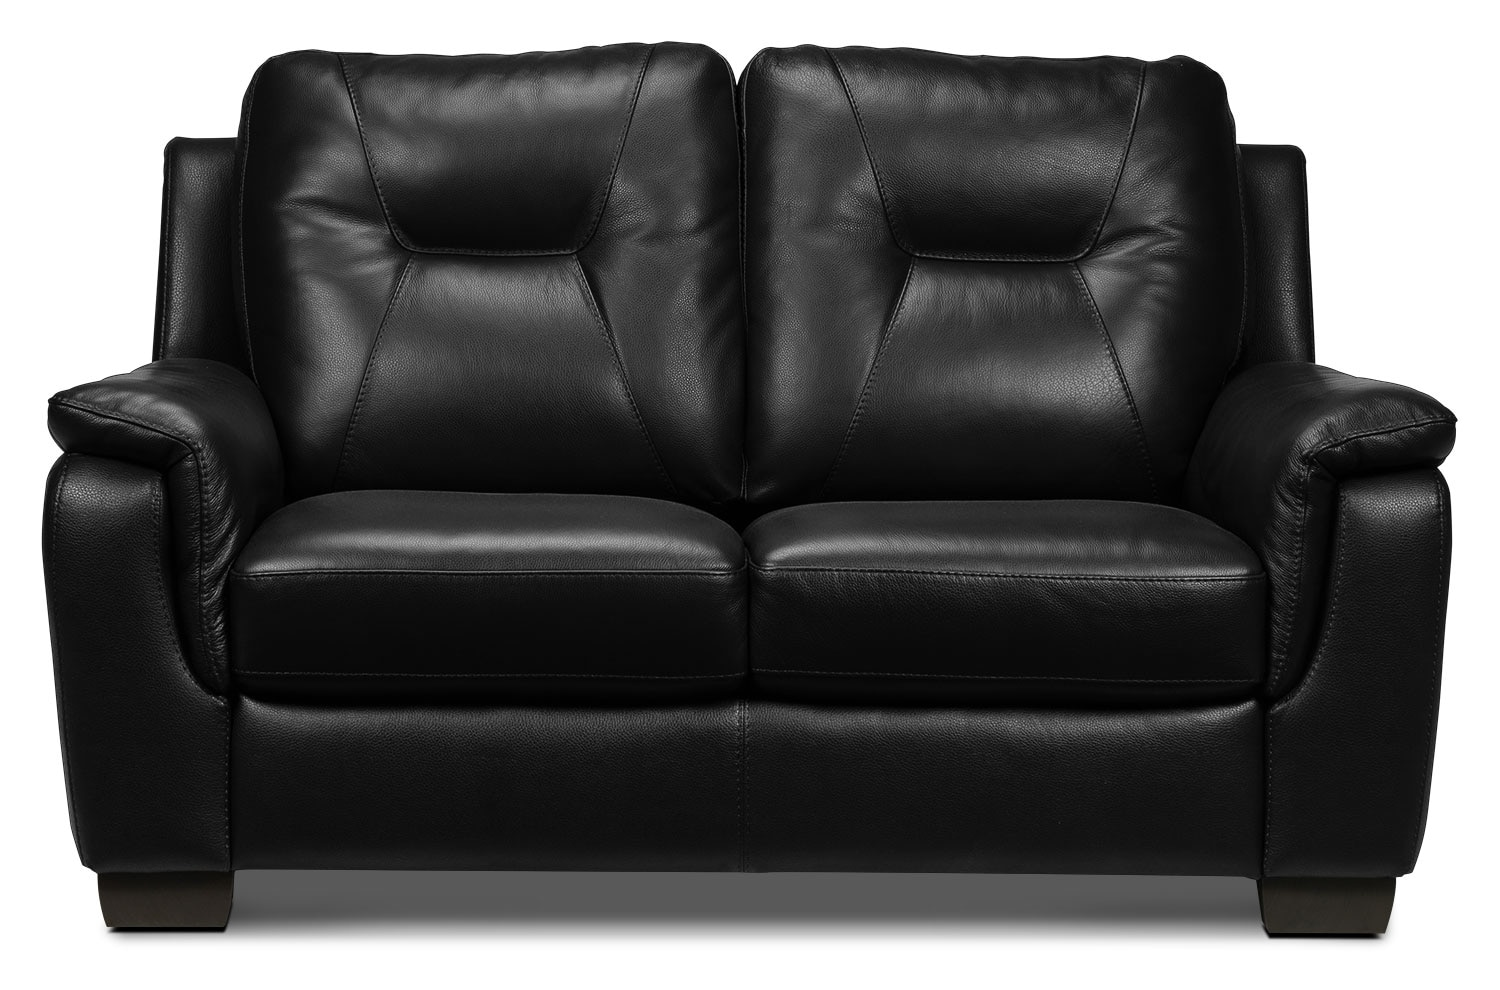 Dalia Loveseat - Black